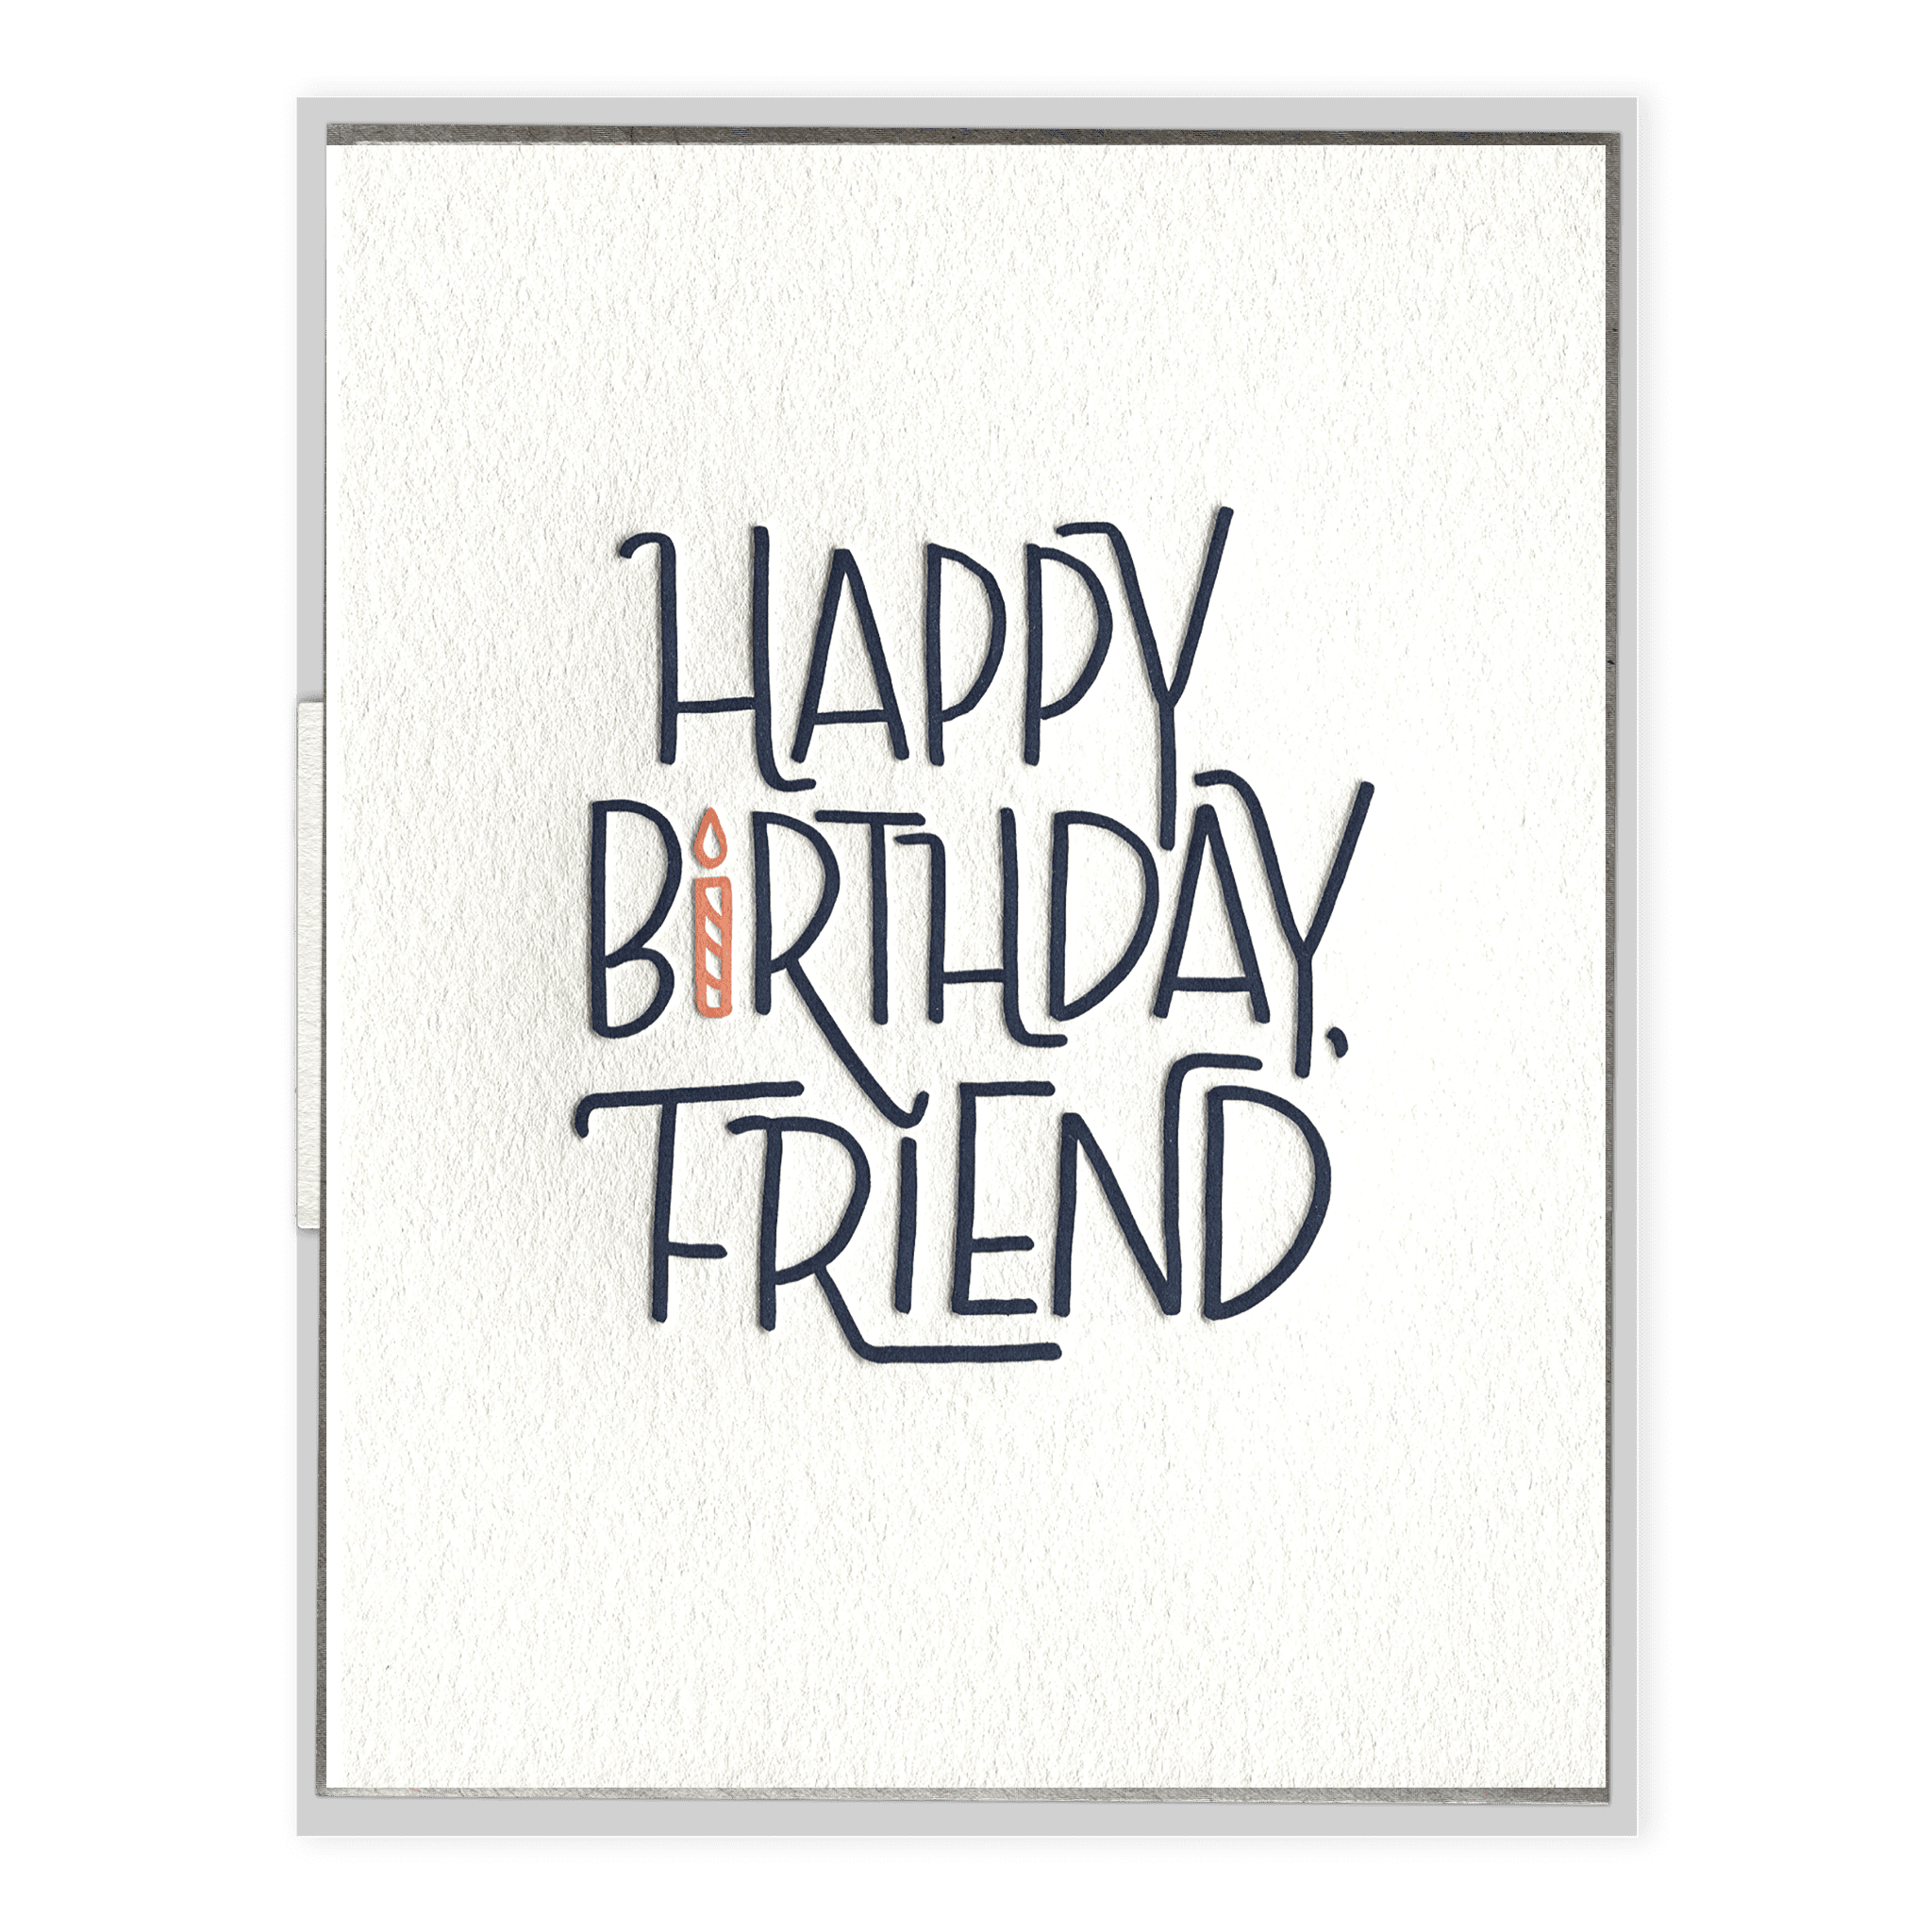 Happy birthday friend birthday happy birthday friend letterpress greeting card m4hsunfo